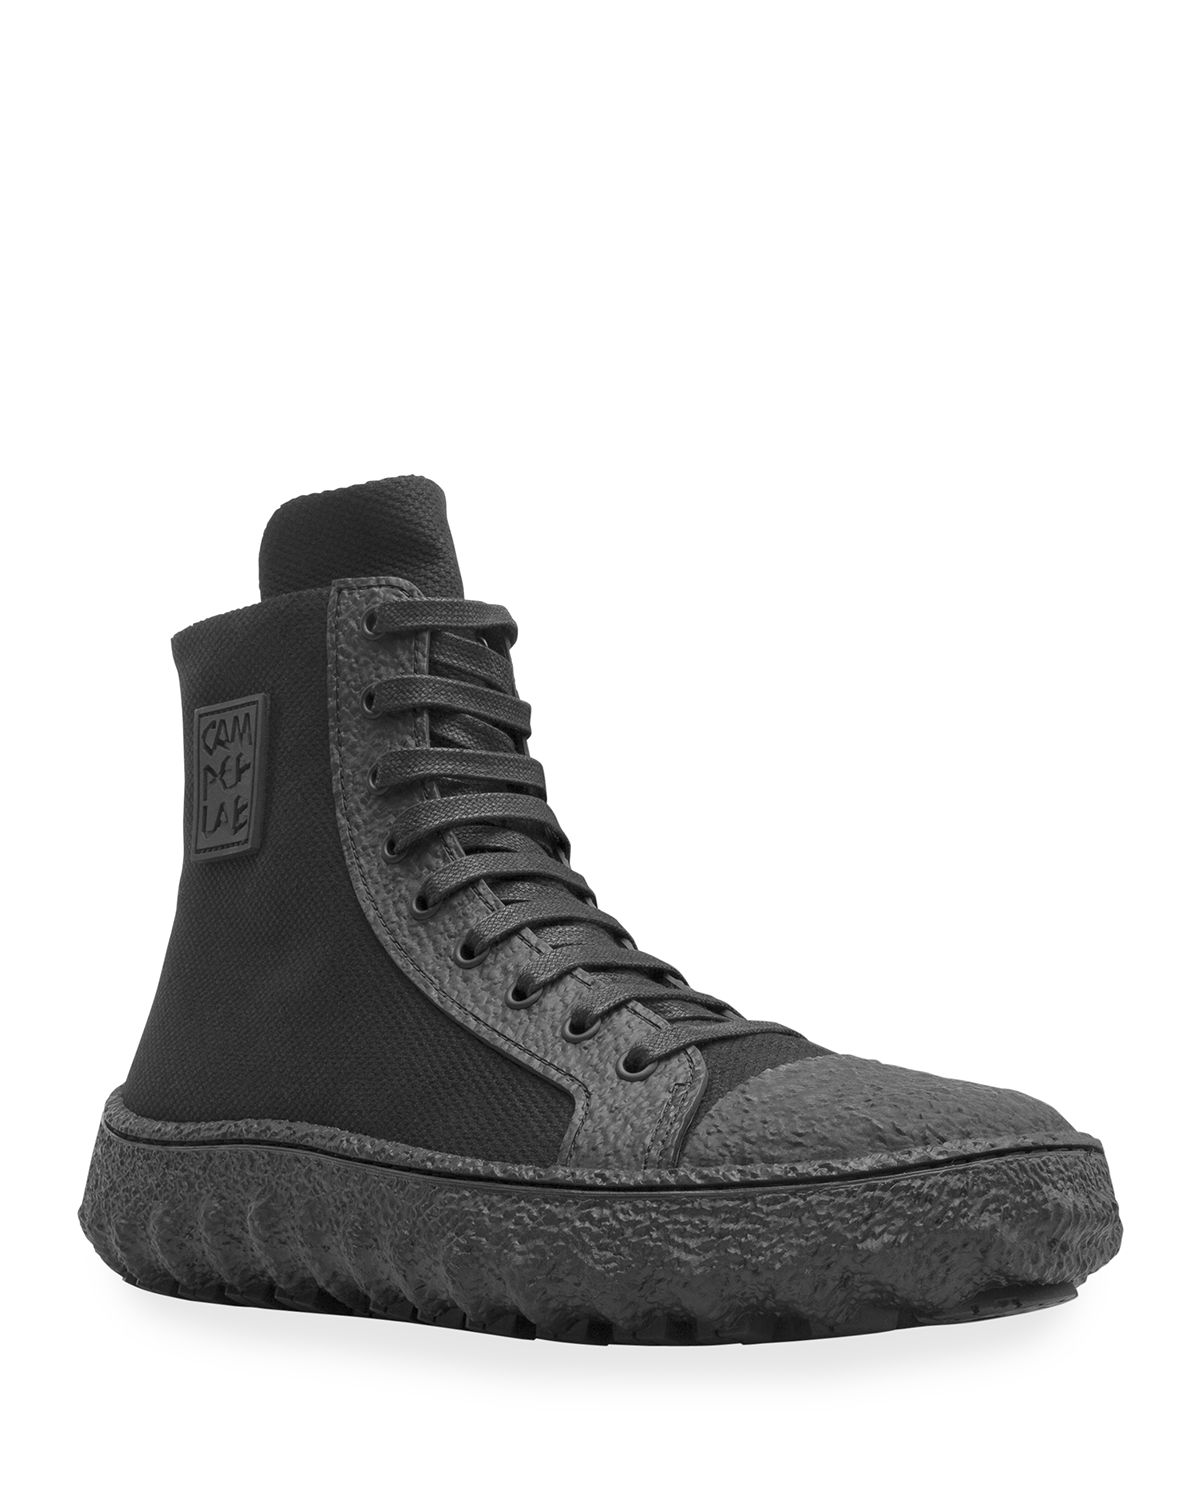 Men's Ground Canvas Textured-Sole High-Top Sneakers